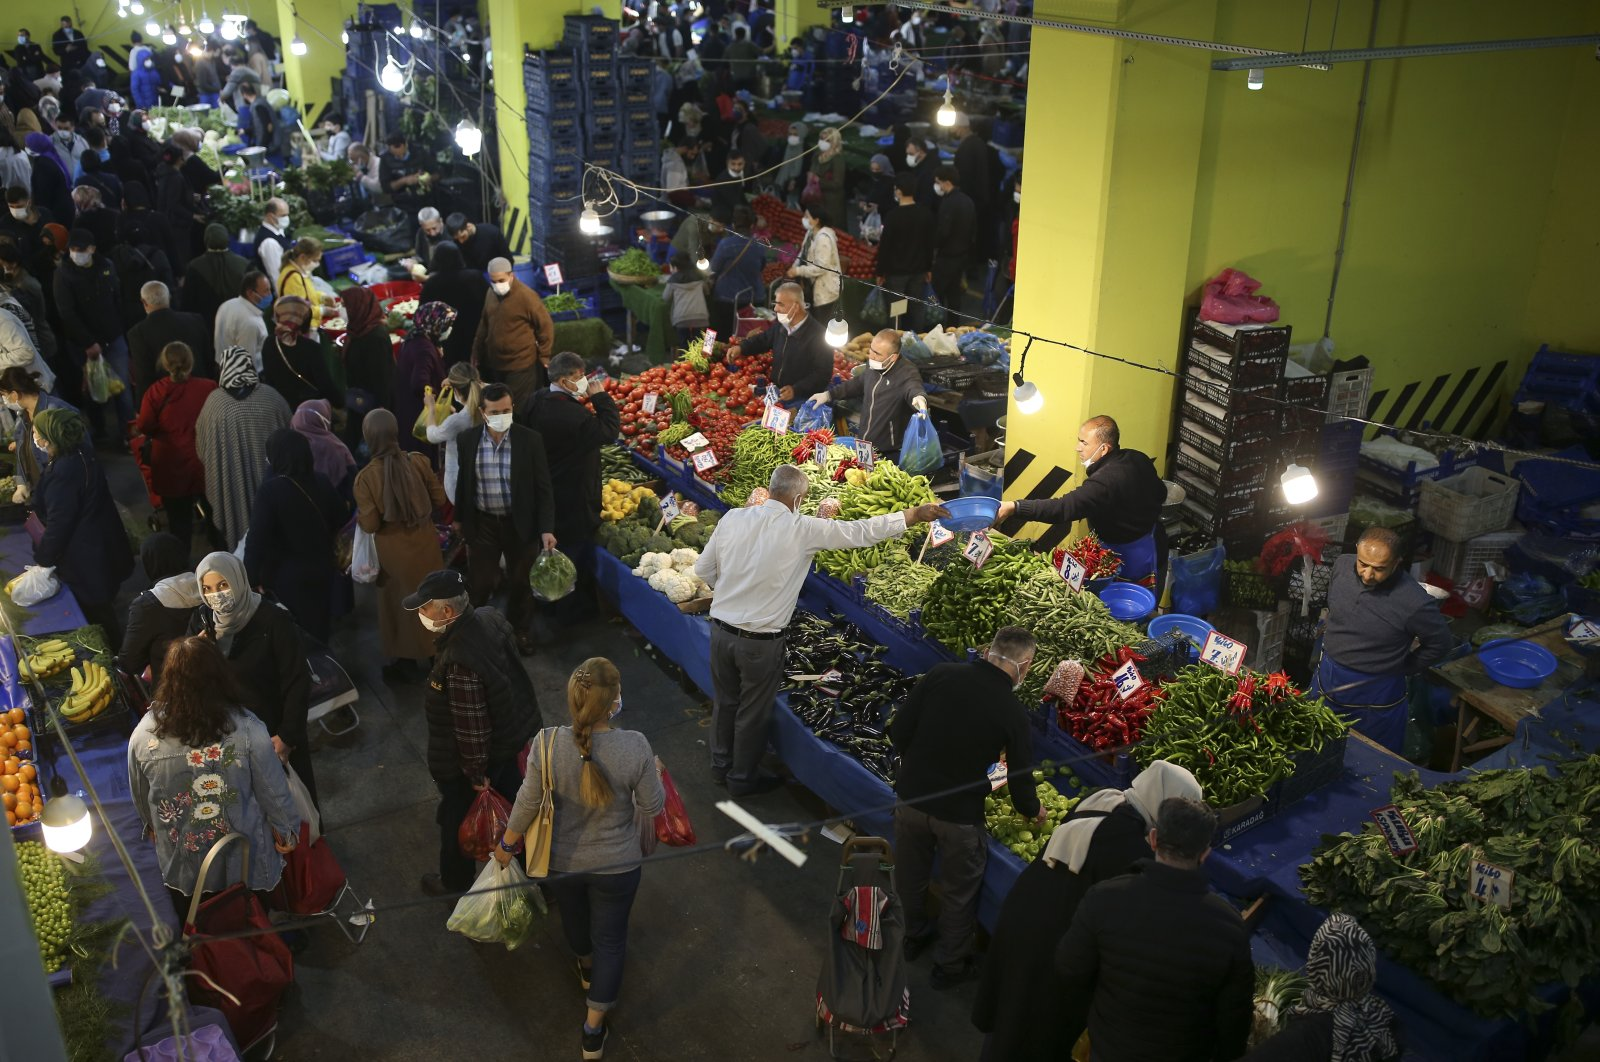 People shop at a local market in Istanbul, Turkey, April 29, 2021. (AP Photo)